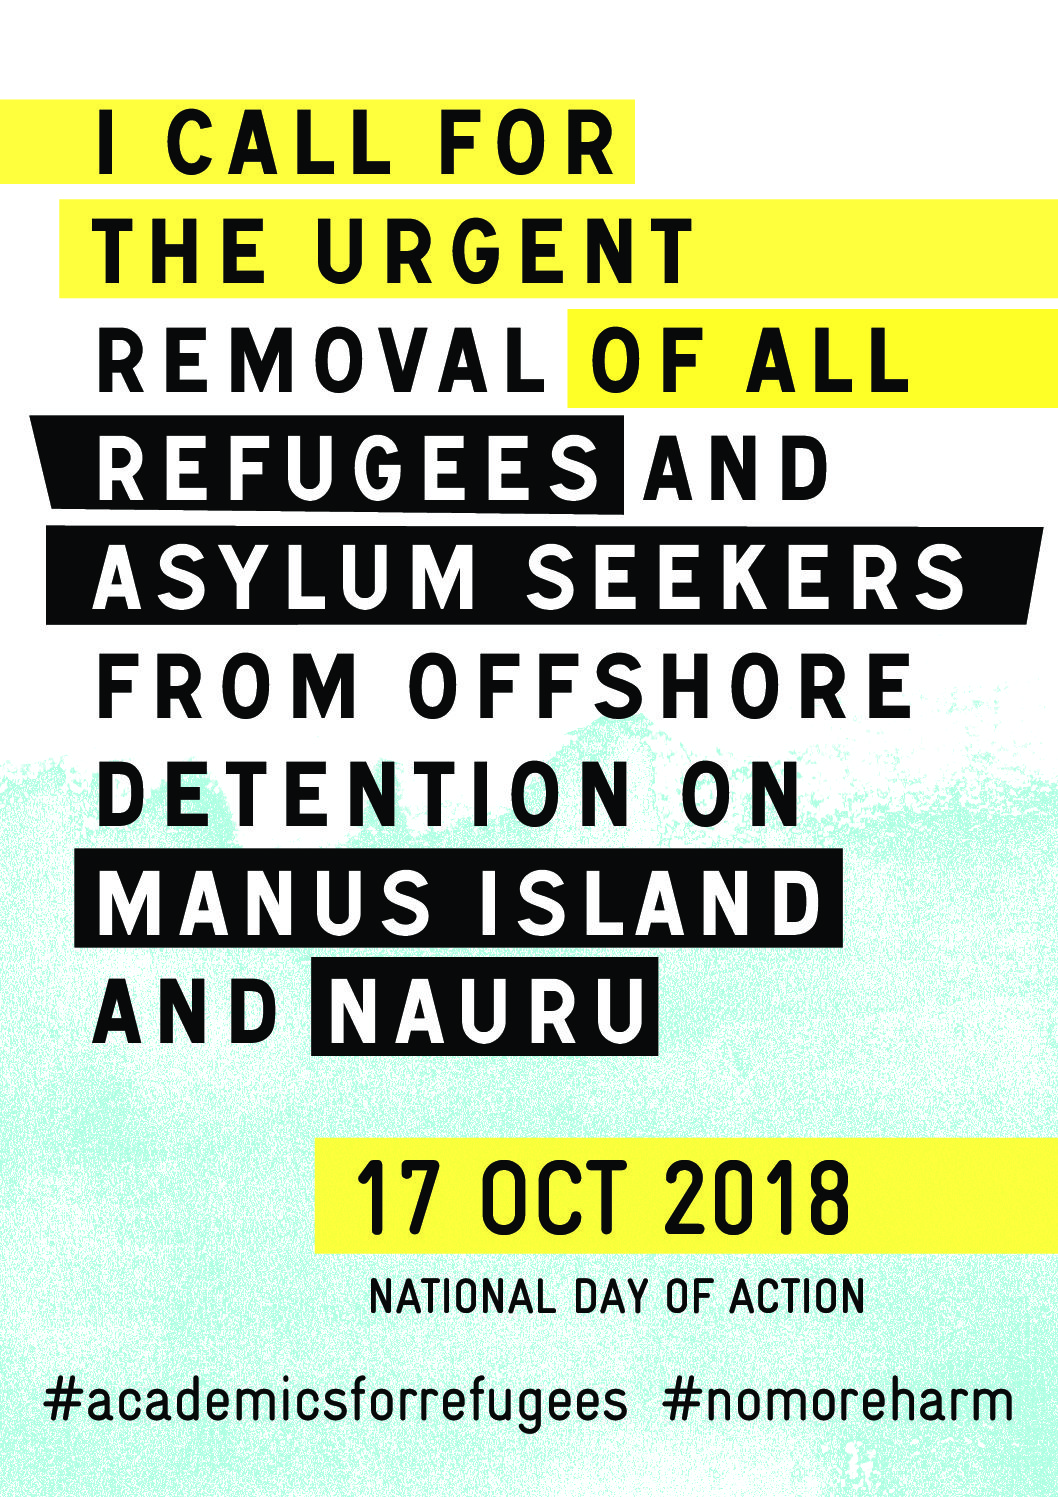 National Day of Action for Refugees